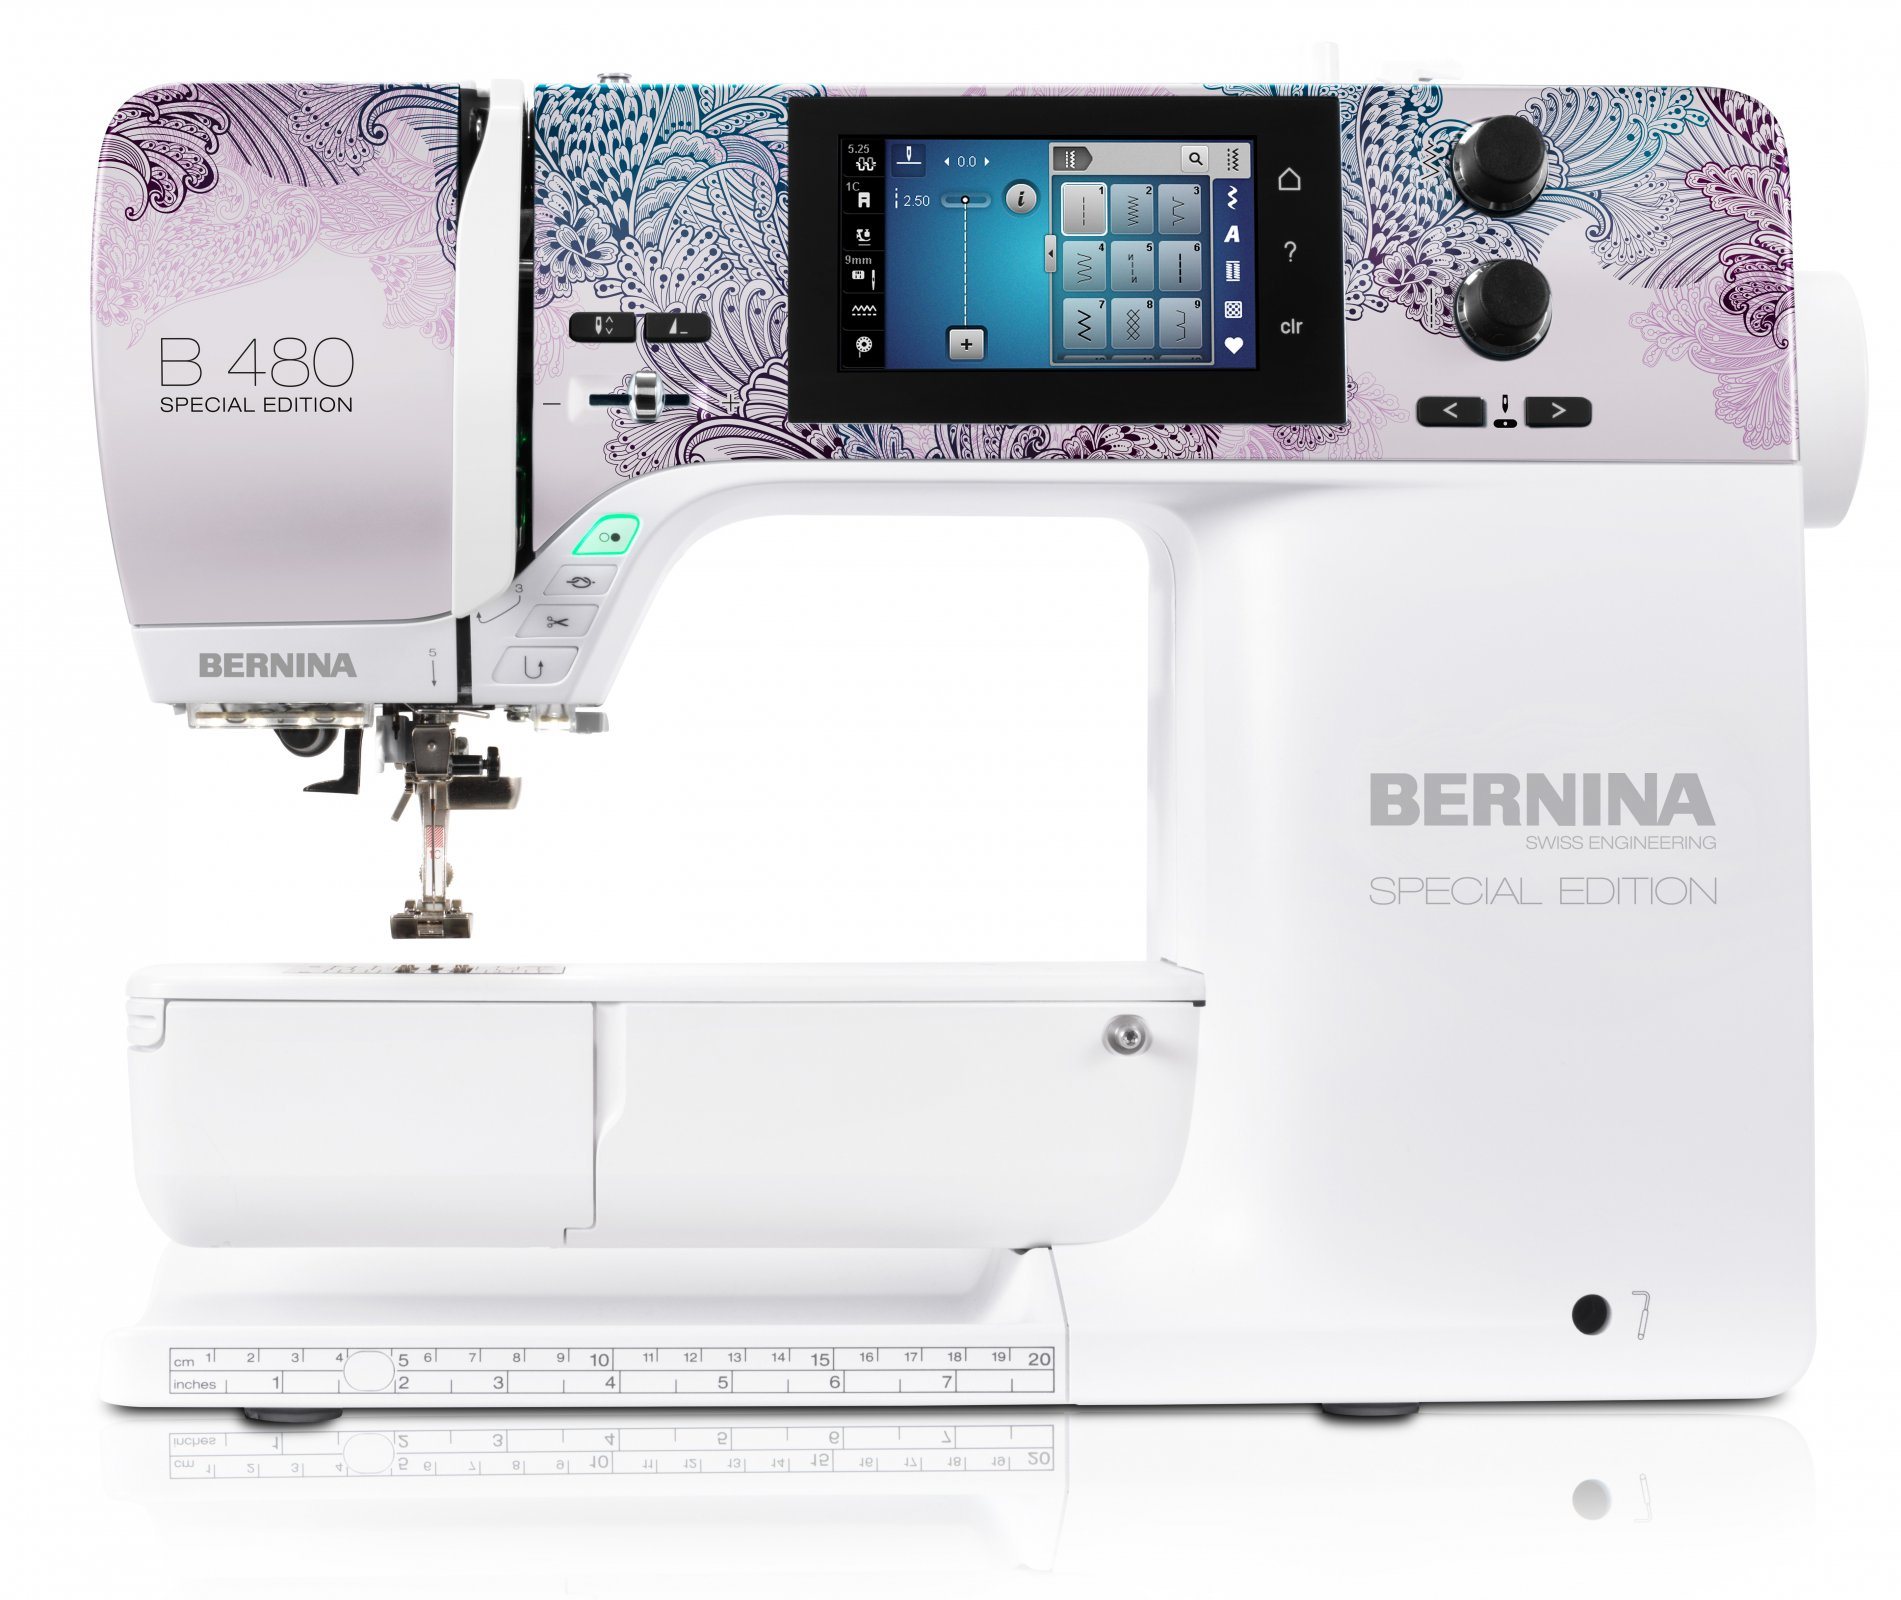 BERNINA 480 SE Ann Lauer Edition